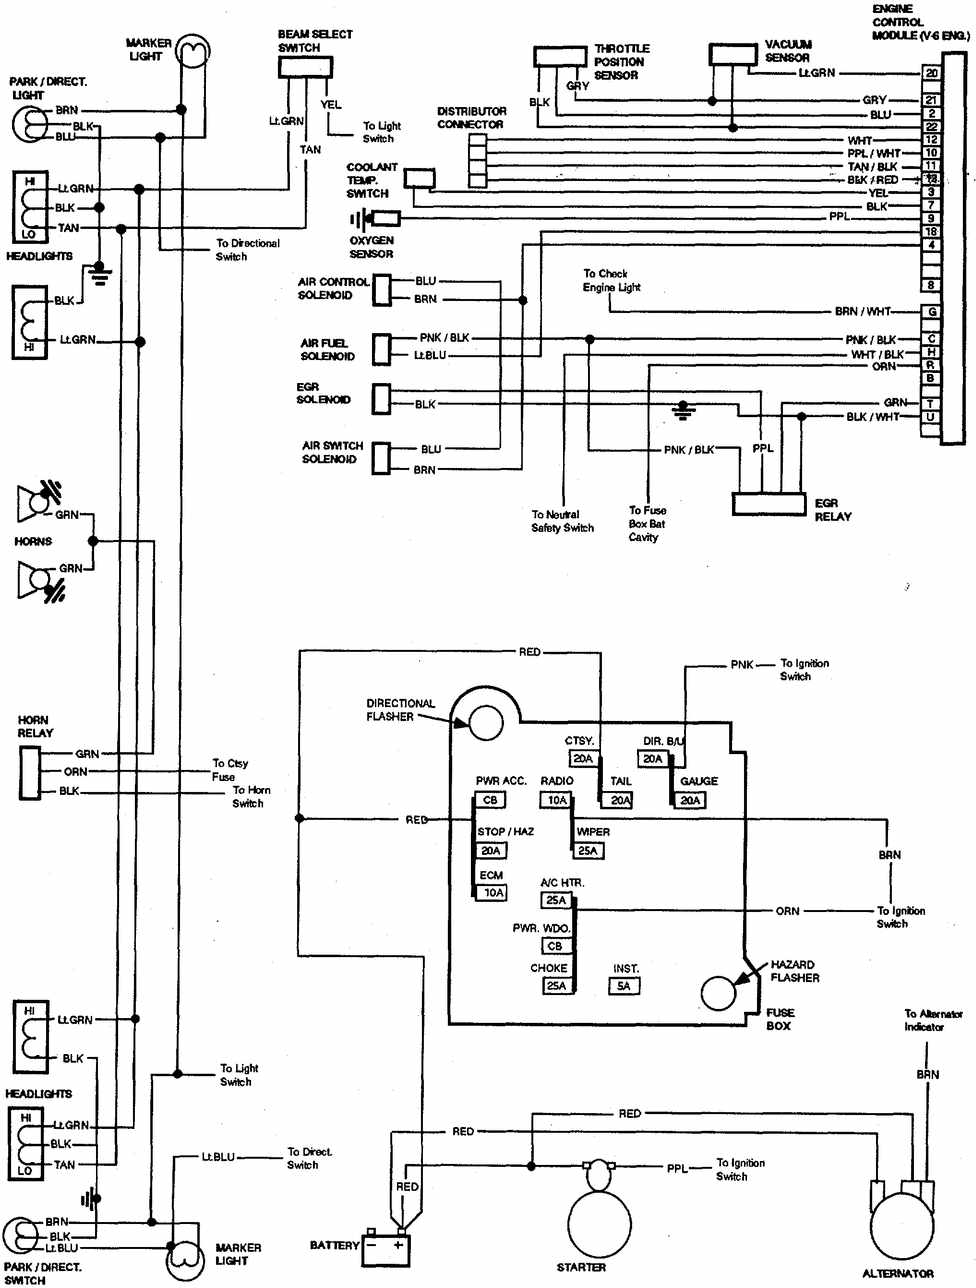 1997 chevy blazer fuse panel wiring auto electrical wiring diagram rh mit edu uk hardtobelieve me [ 976 x 1288 Pixel ]